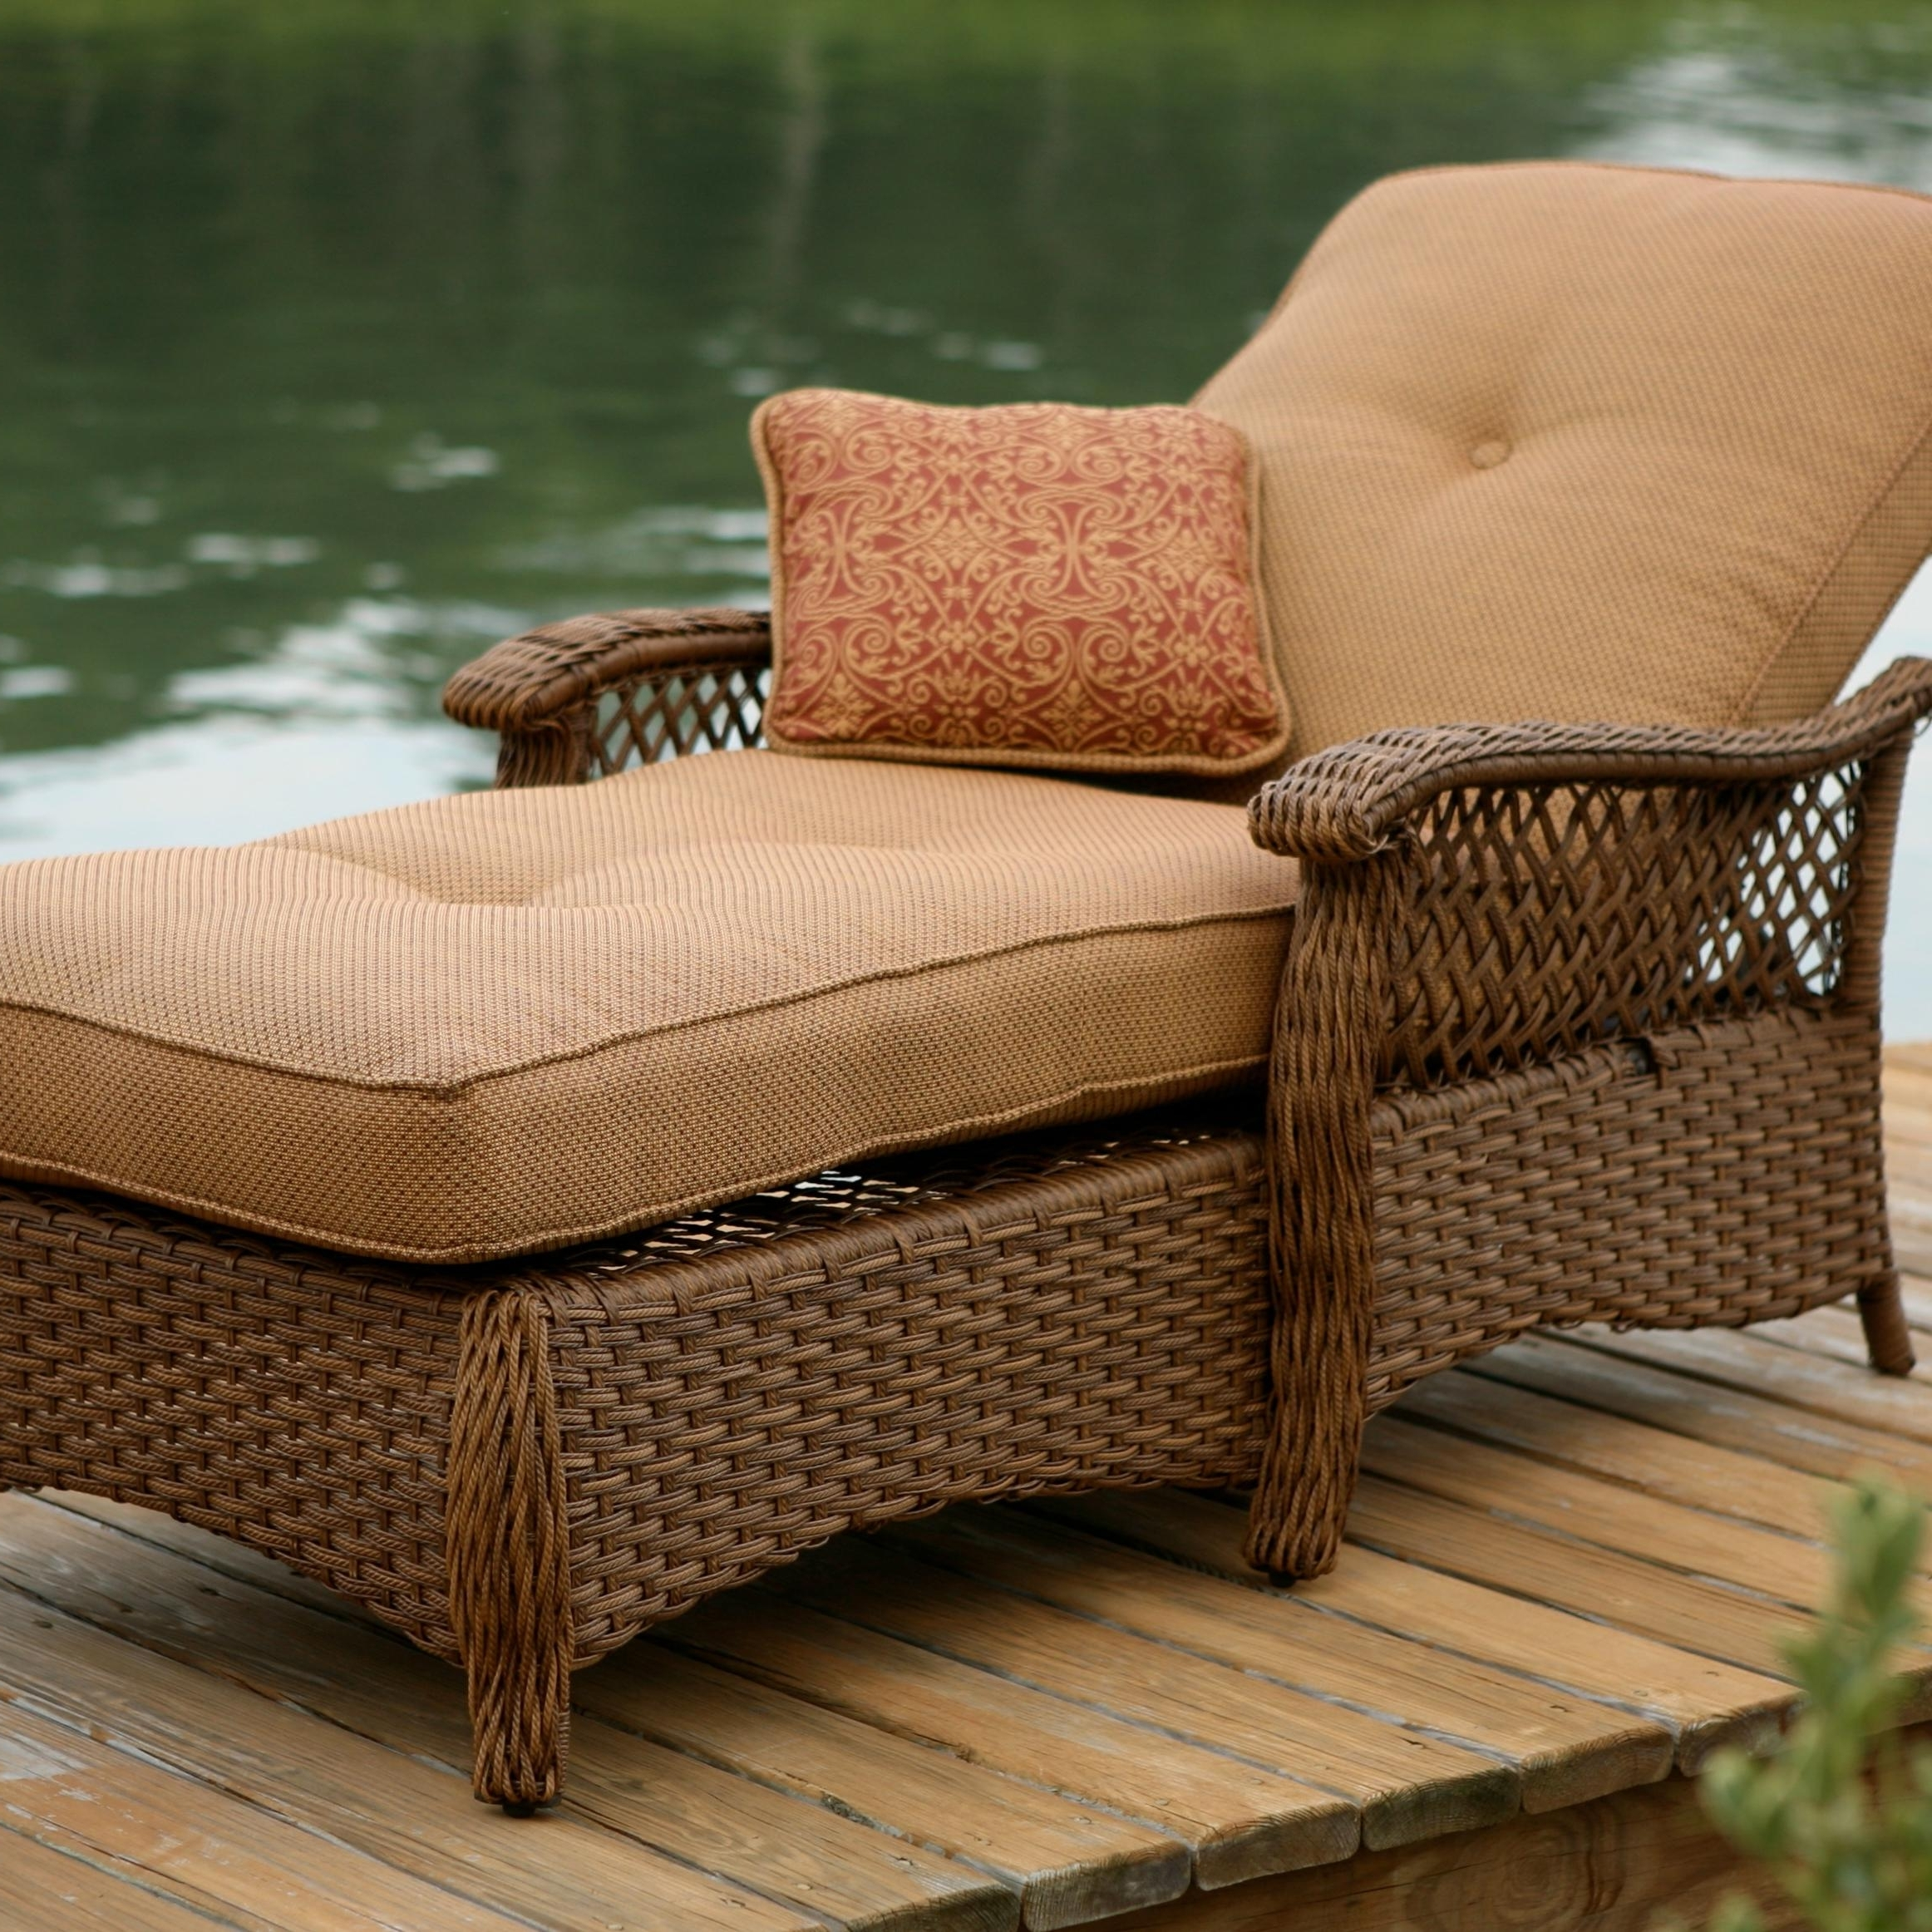 Widely Used Chaise Lounge Chairs For Pool Area Within Lounge Chair : Pool Deck Chairs Double Chaise Lounge Outdoor Sale (View 13 of 15)